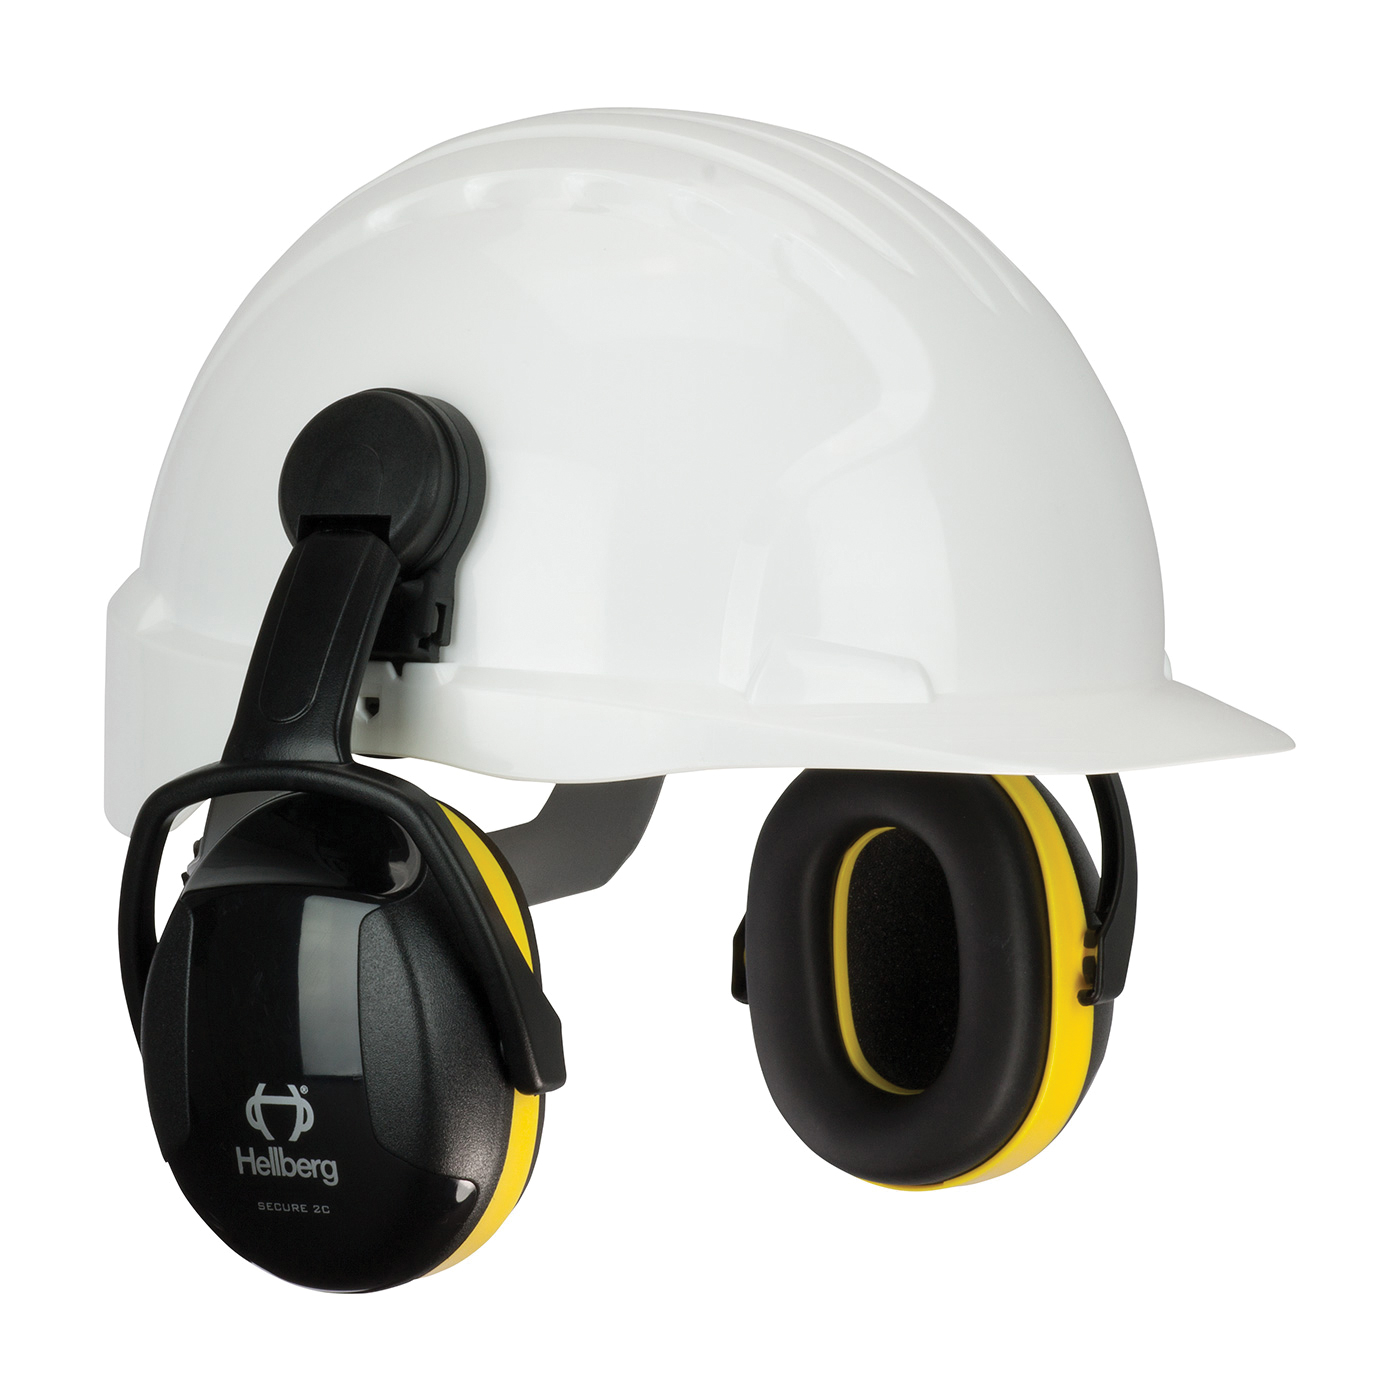 Hellberg® 263-42002 Secure™ 2 Cap Mount Passive Earmuffs, 24 dB Noise Reduction, Black/Yellow, ANSI S3.19-1974, CE Certified